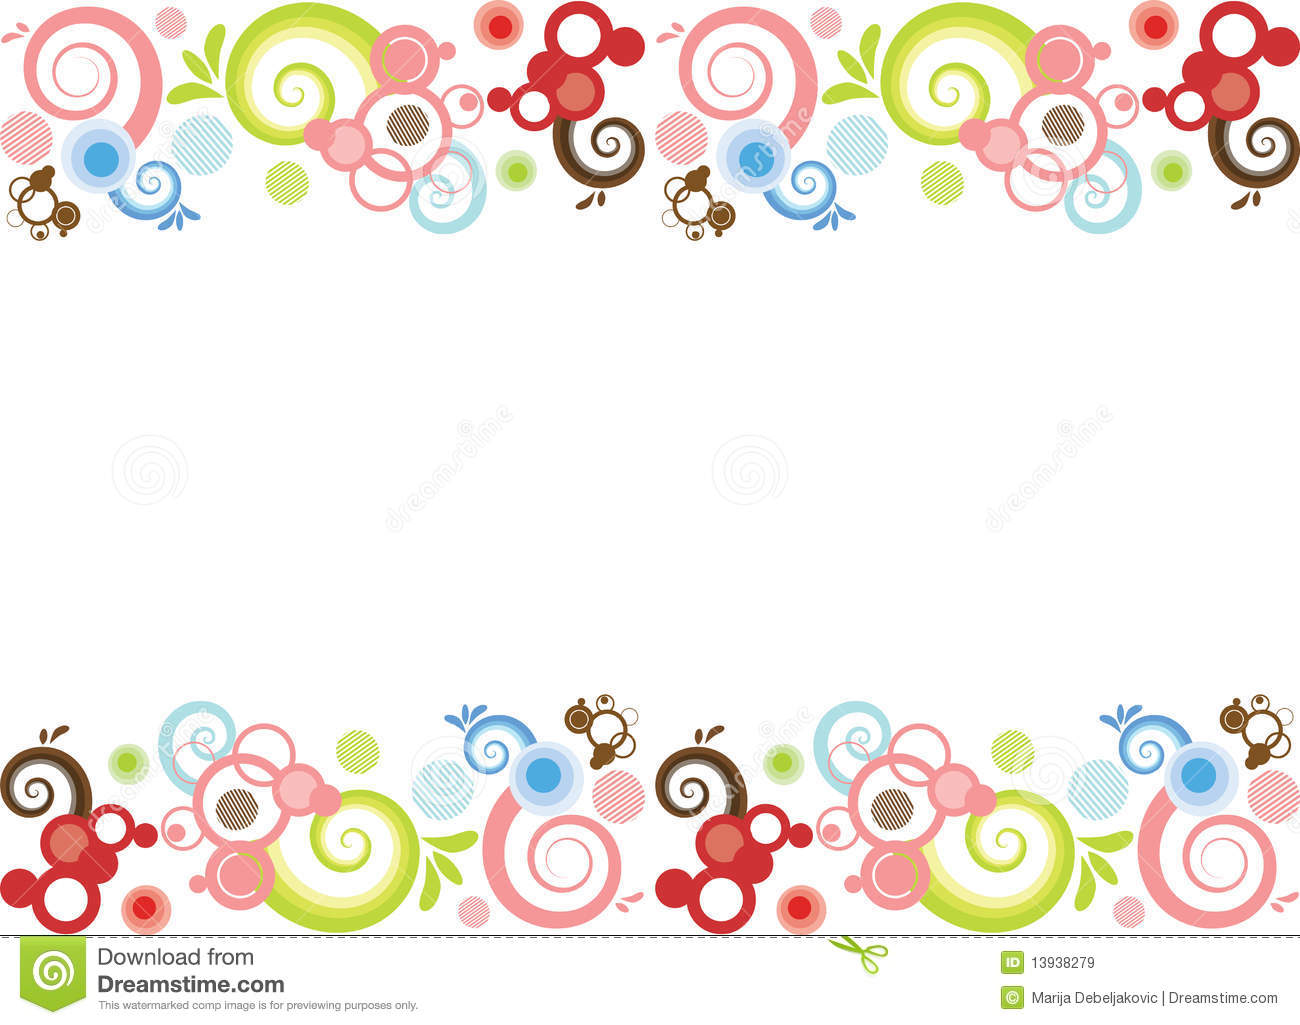 Abstract Border Royalty Free Stock Images - Image: 13938279